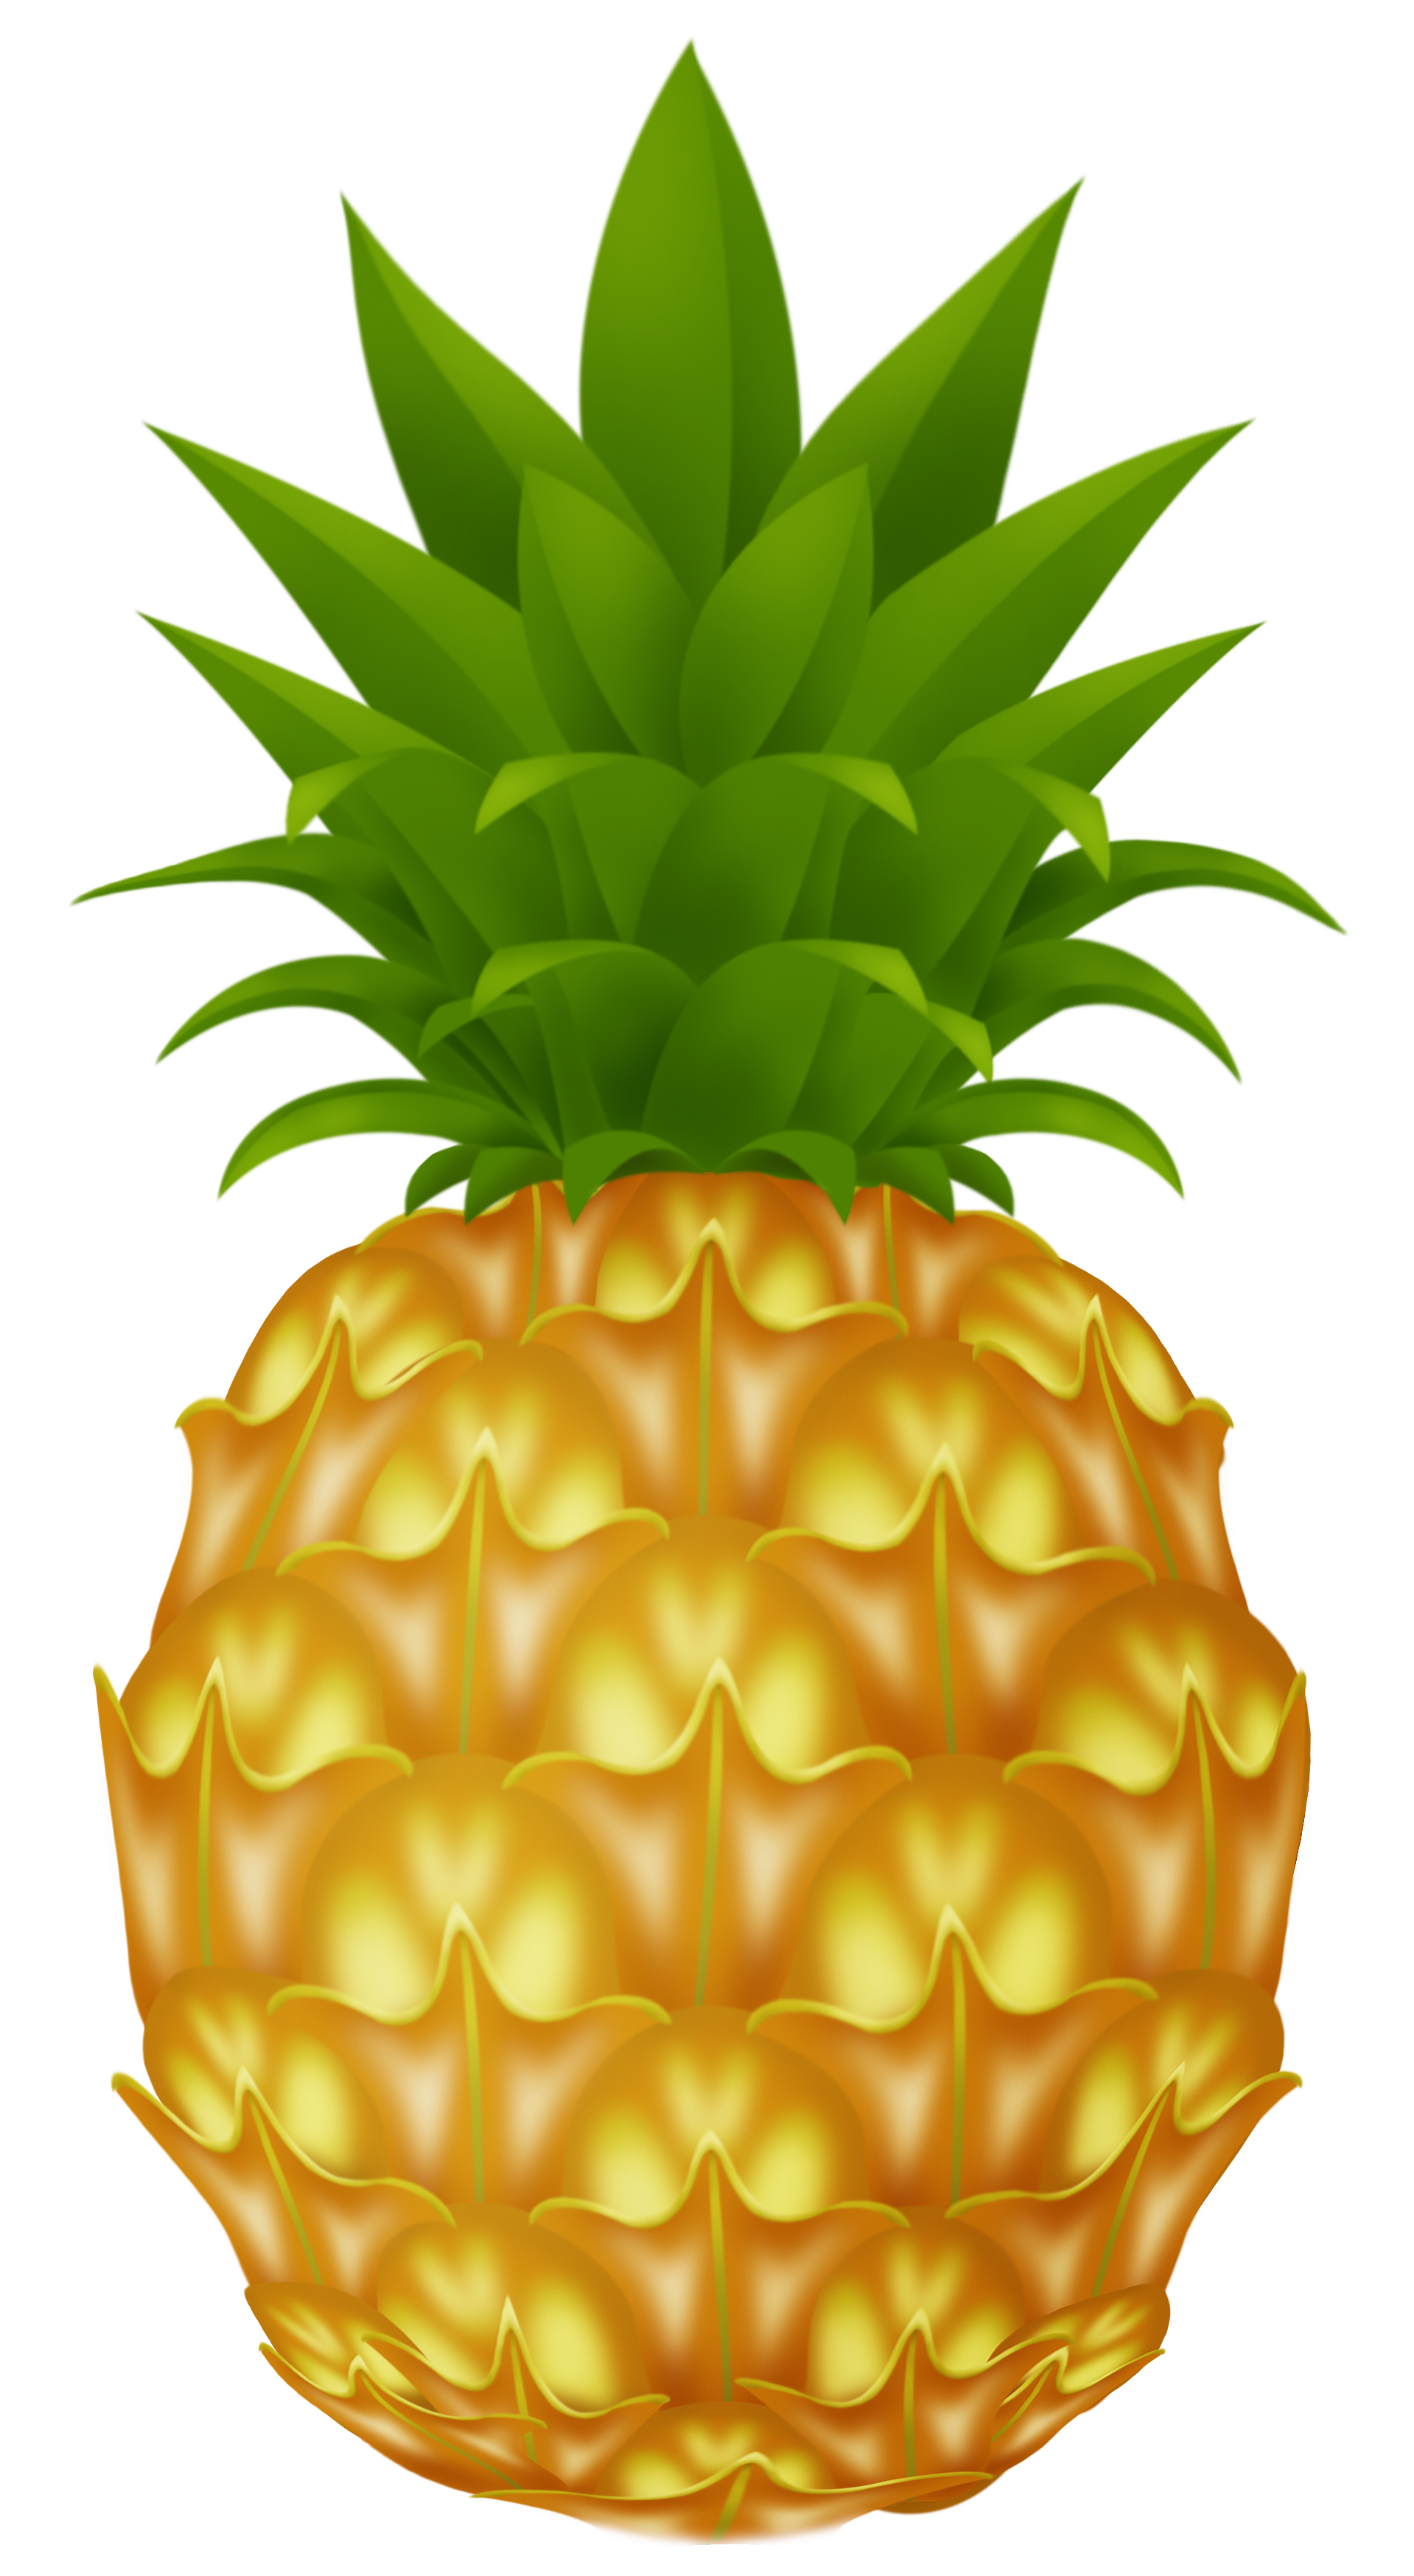 Pineapple PNG - 16595